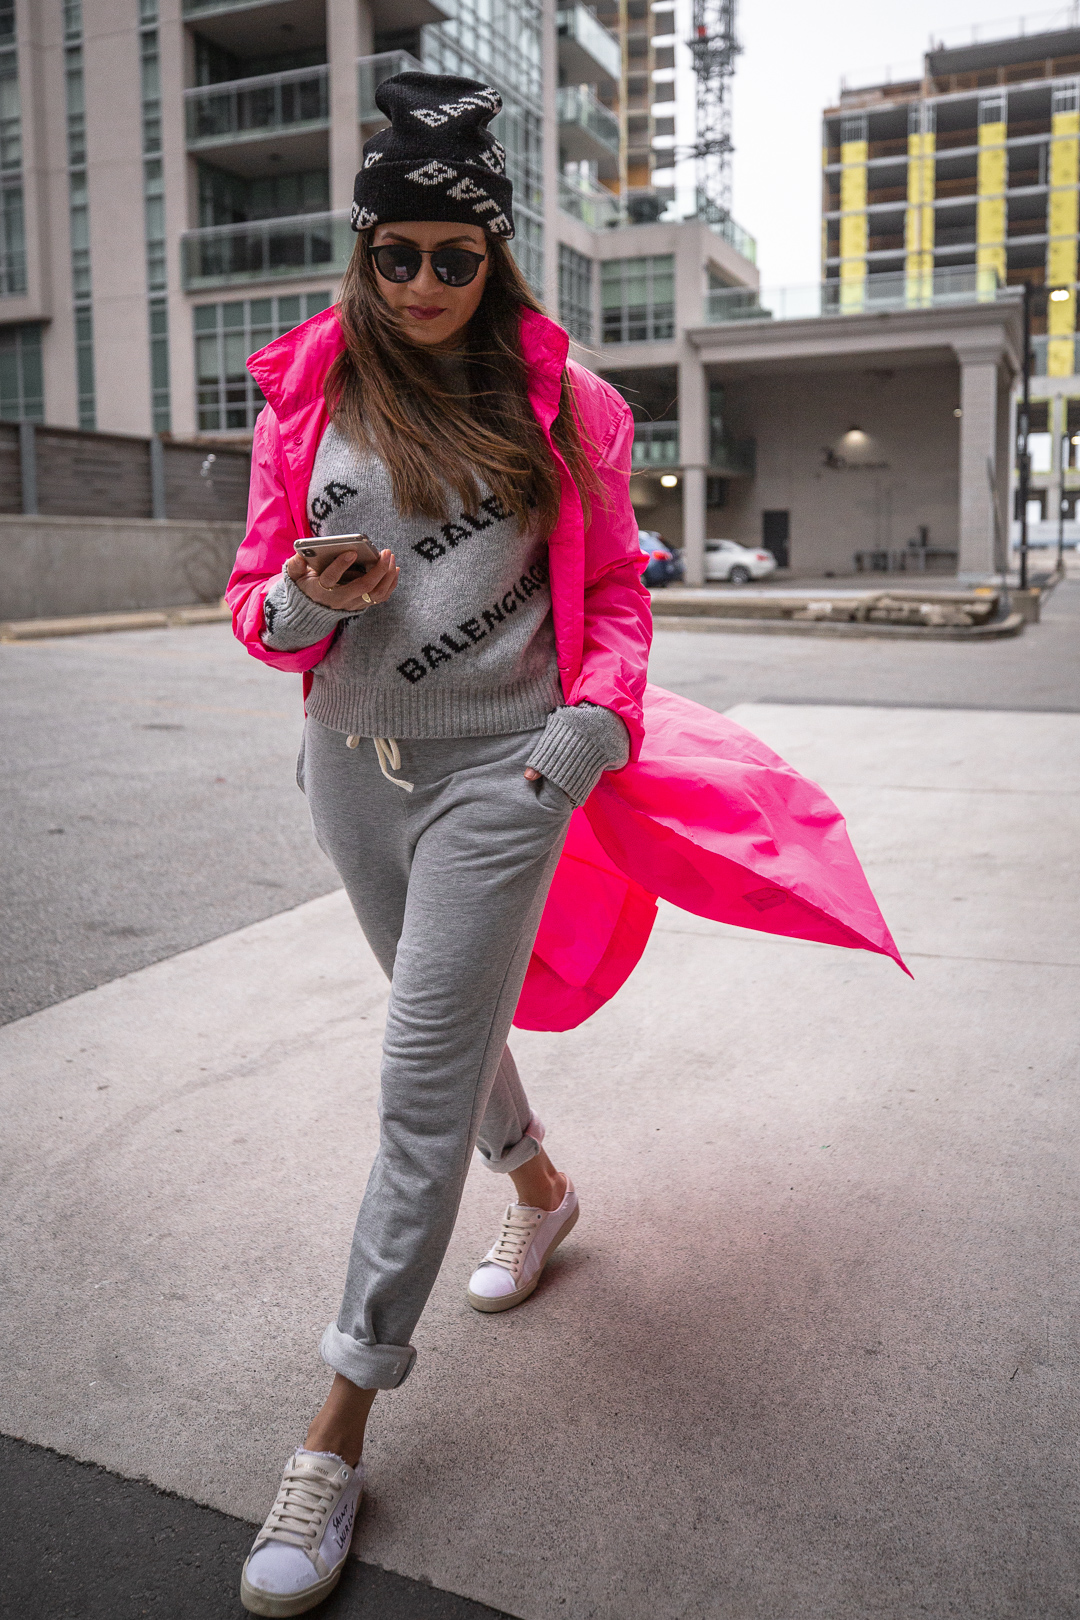 Nathalie Martin - Opening Ceremony pink nylon trench, Saint Laurent white canvas sneakers, Balenciaga logo beanie and cropped logo sweater, grey joggers, casual street style, woahstyle.com_5438.jpg